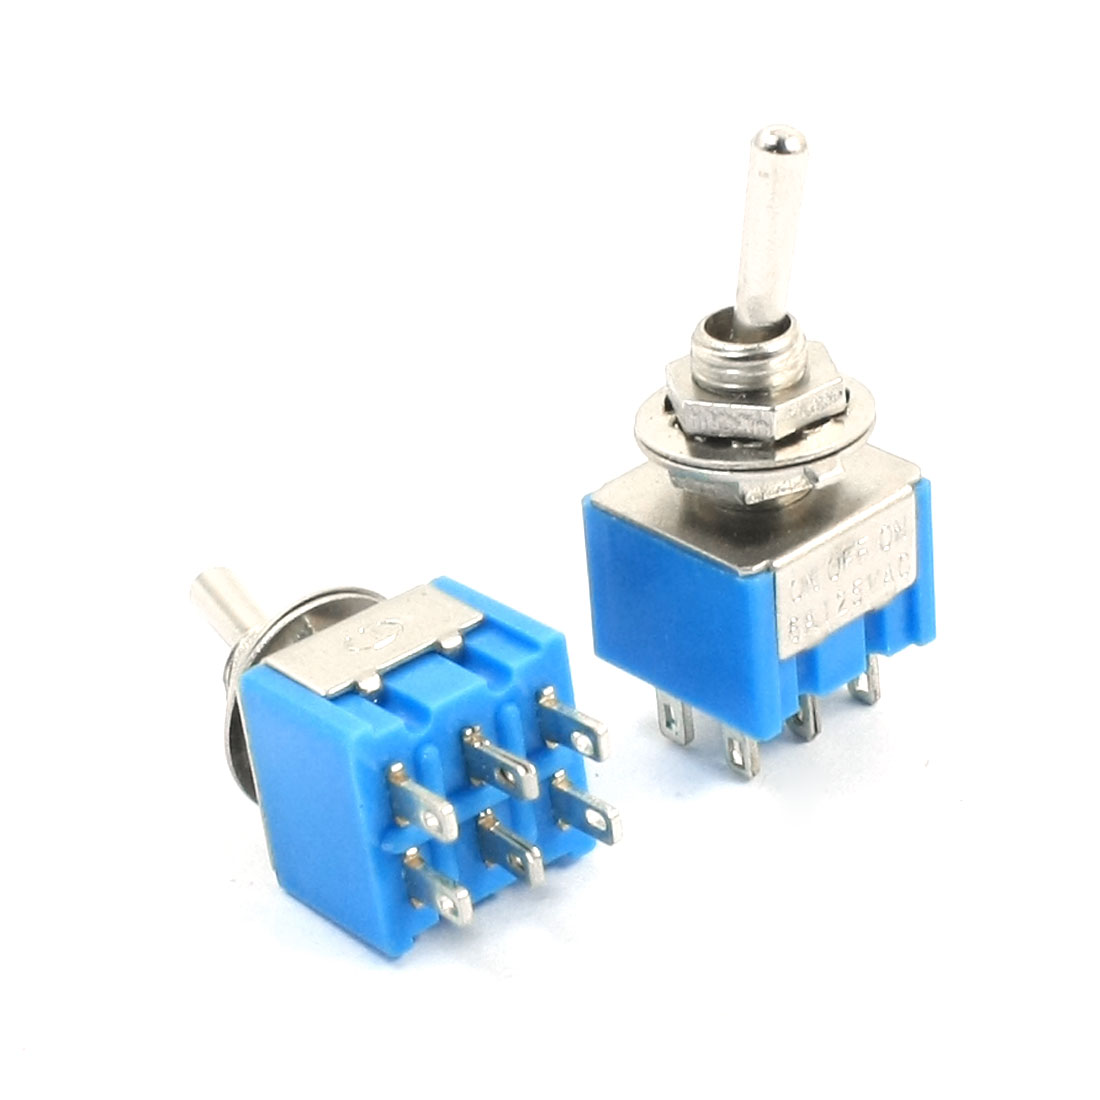 6mm Panel Mounted 6 Pin ON/OFF/ON DPDT Toggle Switch AC 125V 6A Blue 2pcs